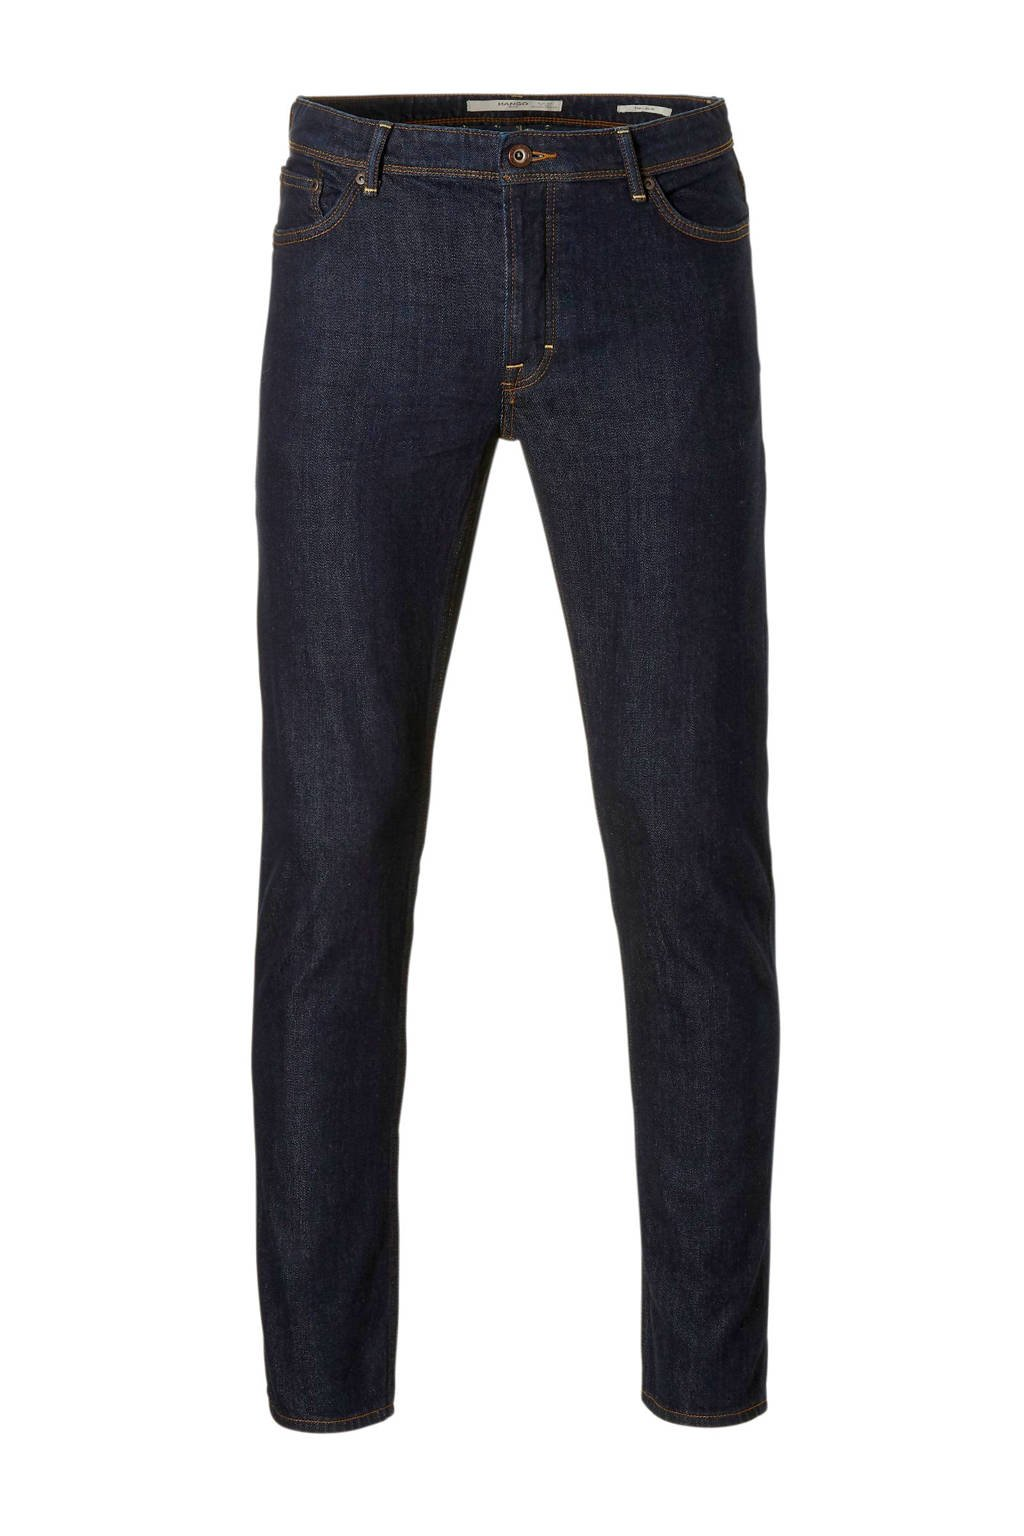 Mango Man slim fit jeans Tim, Dark denim